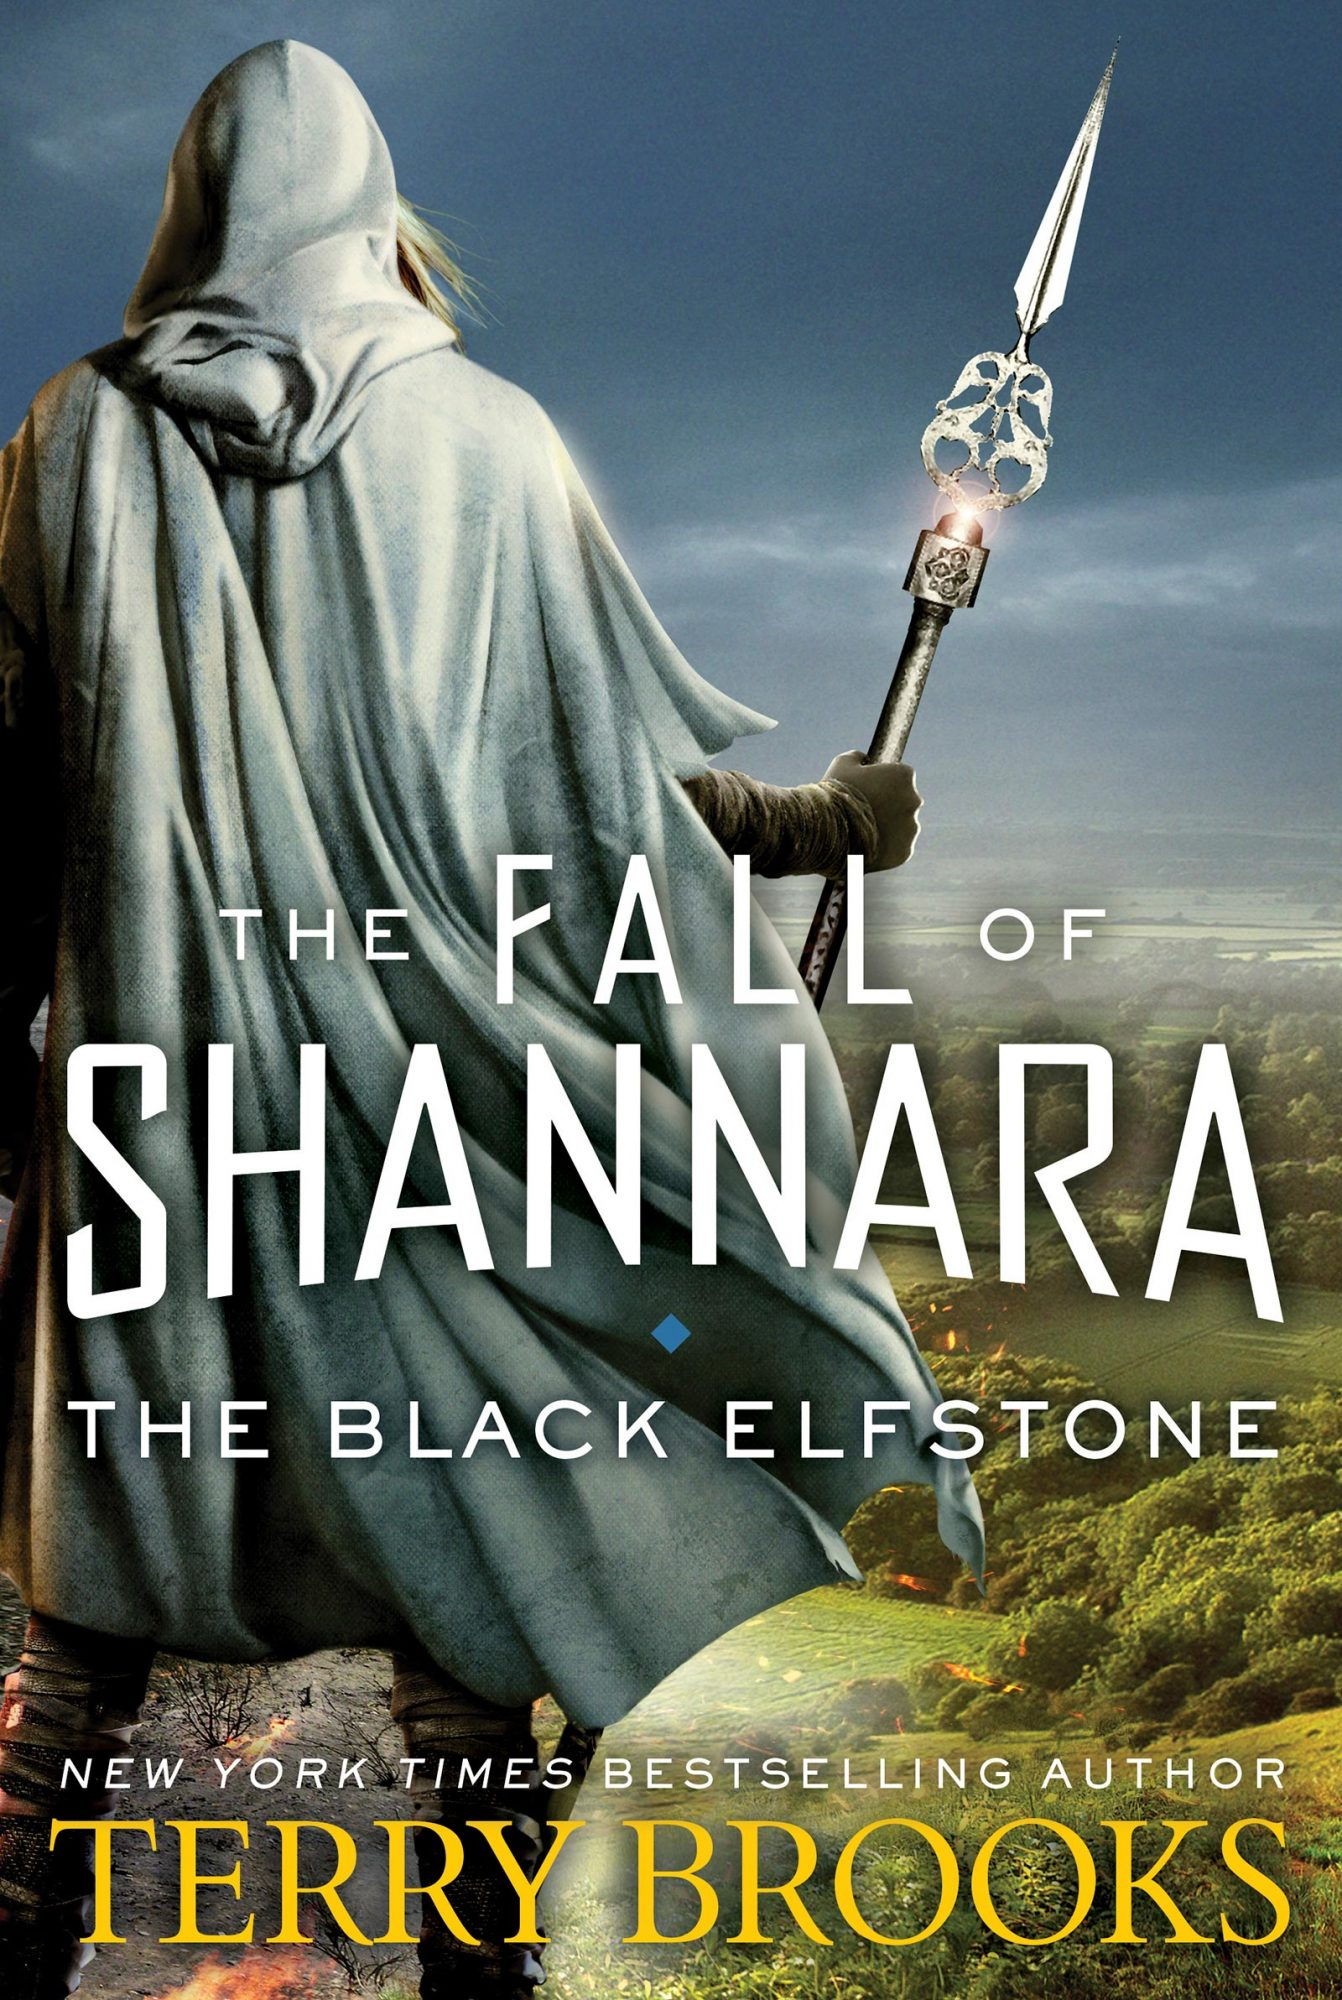 THE FALL OF SHANNARA: THE BLACK ELFSTONE (6/13/17)by Terry Brooks